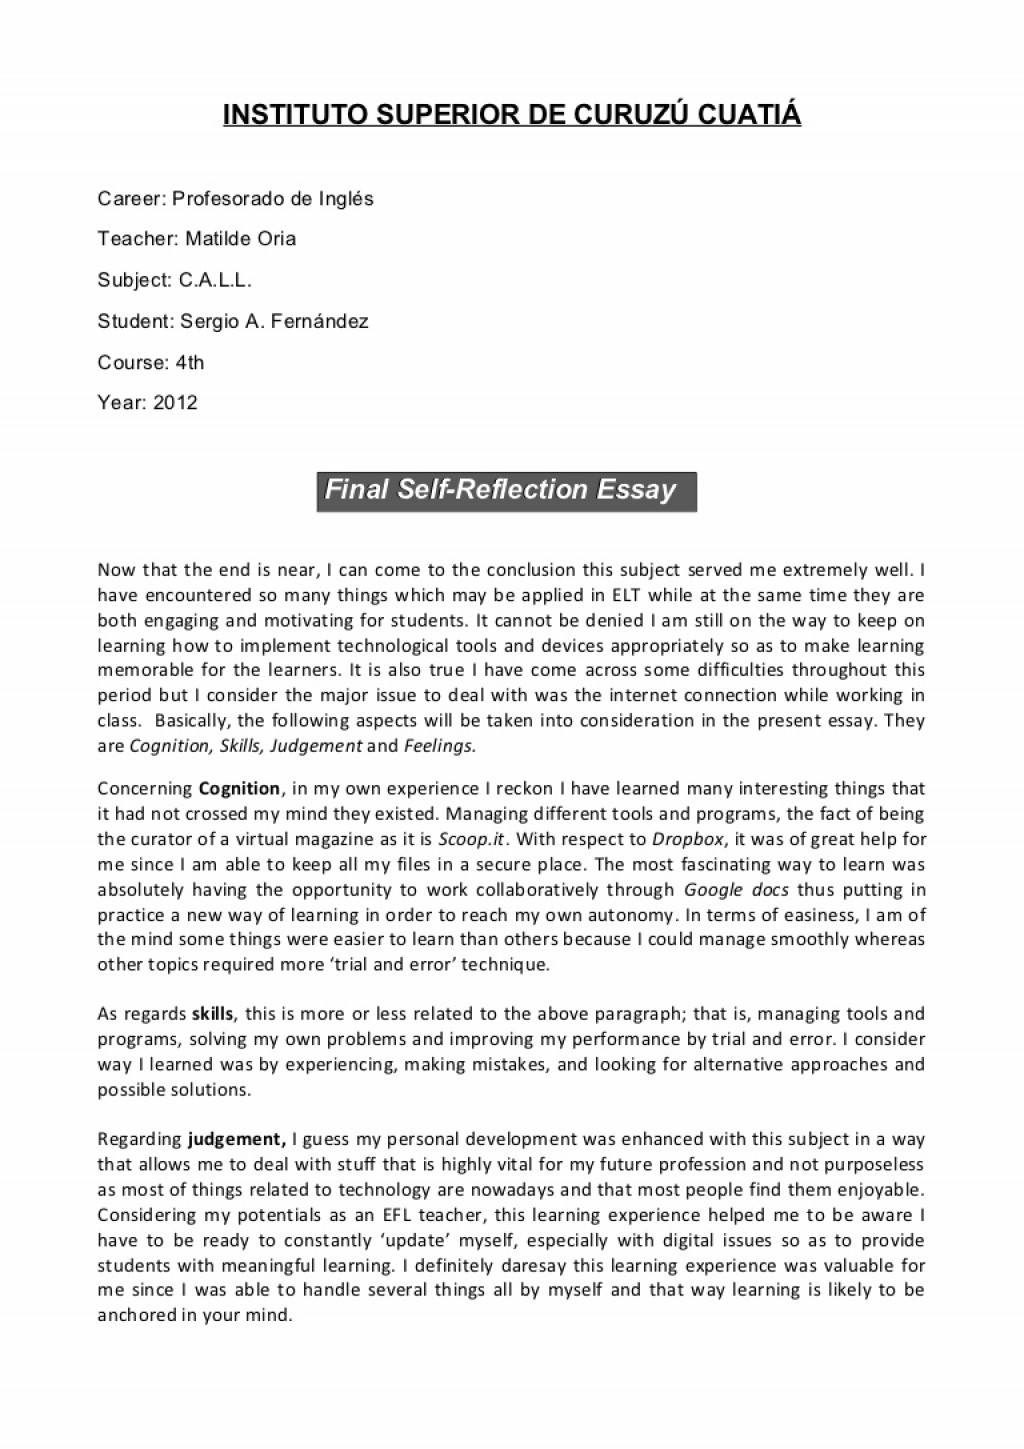 005 Reflective Essay Thesis Statement Examples Sample